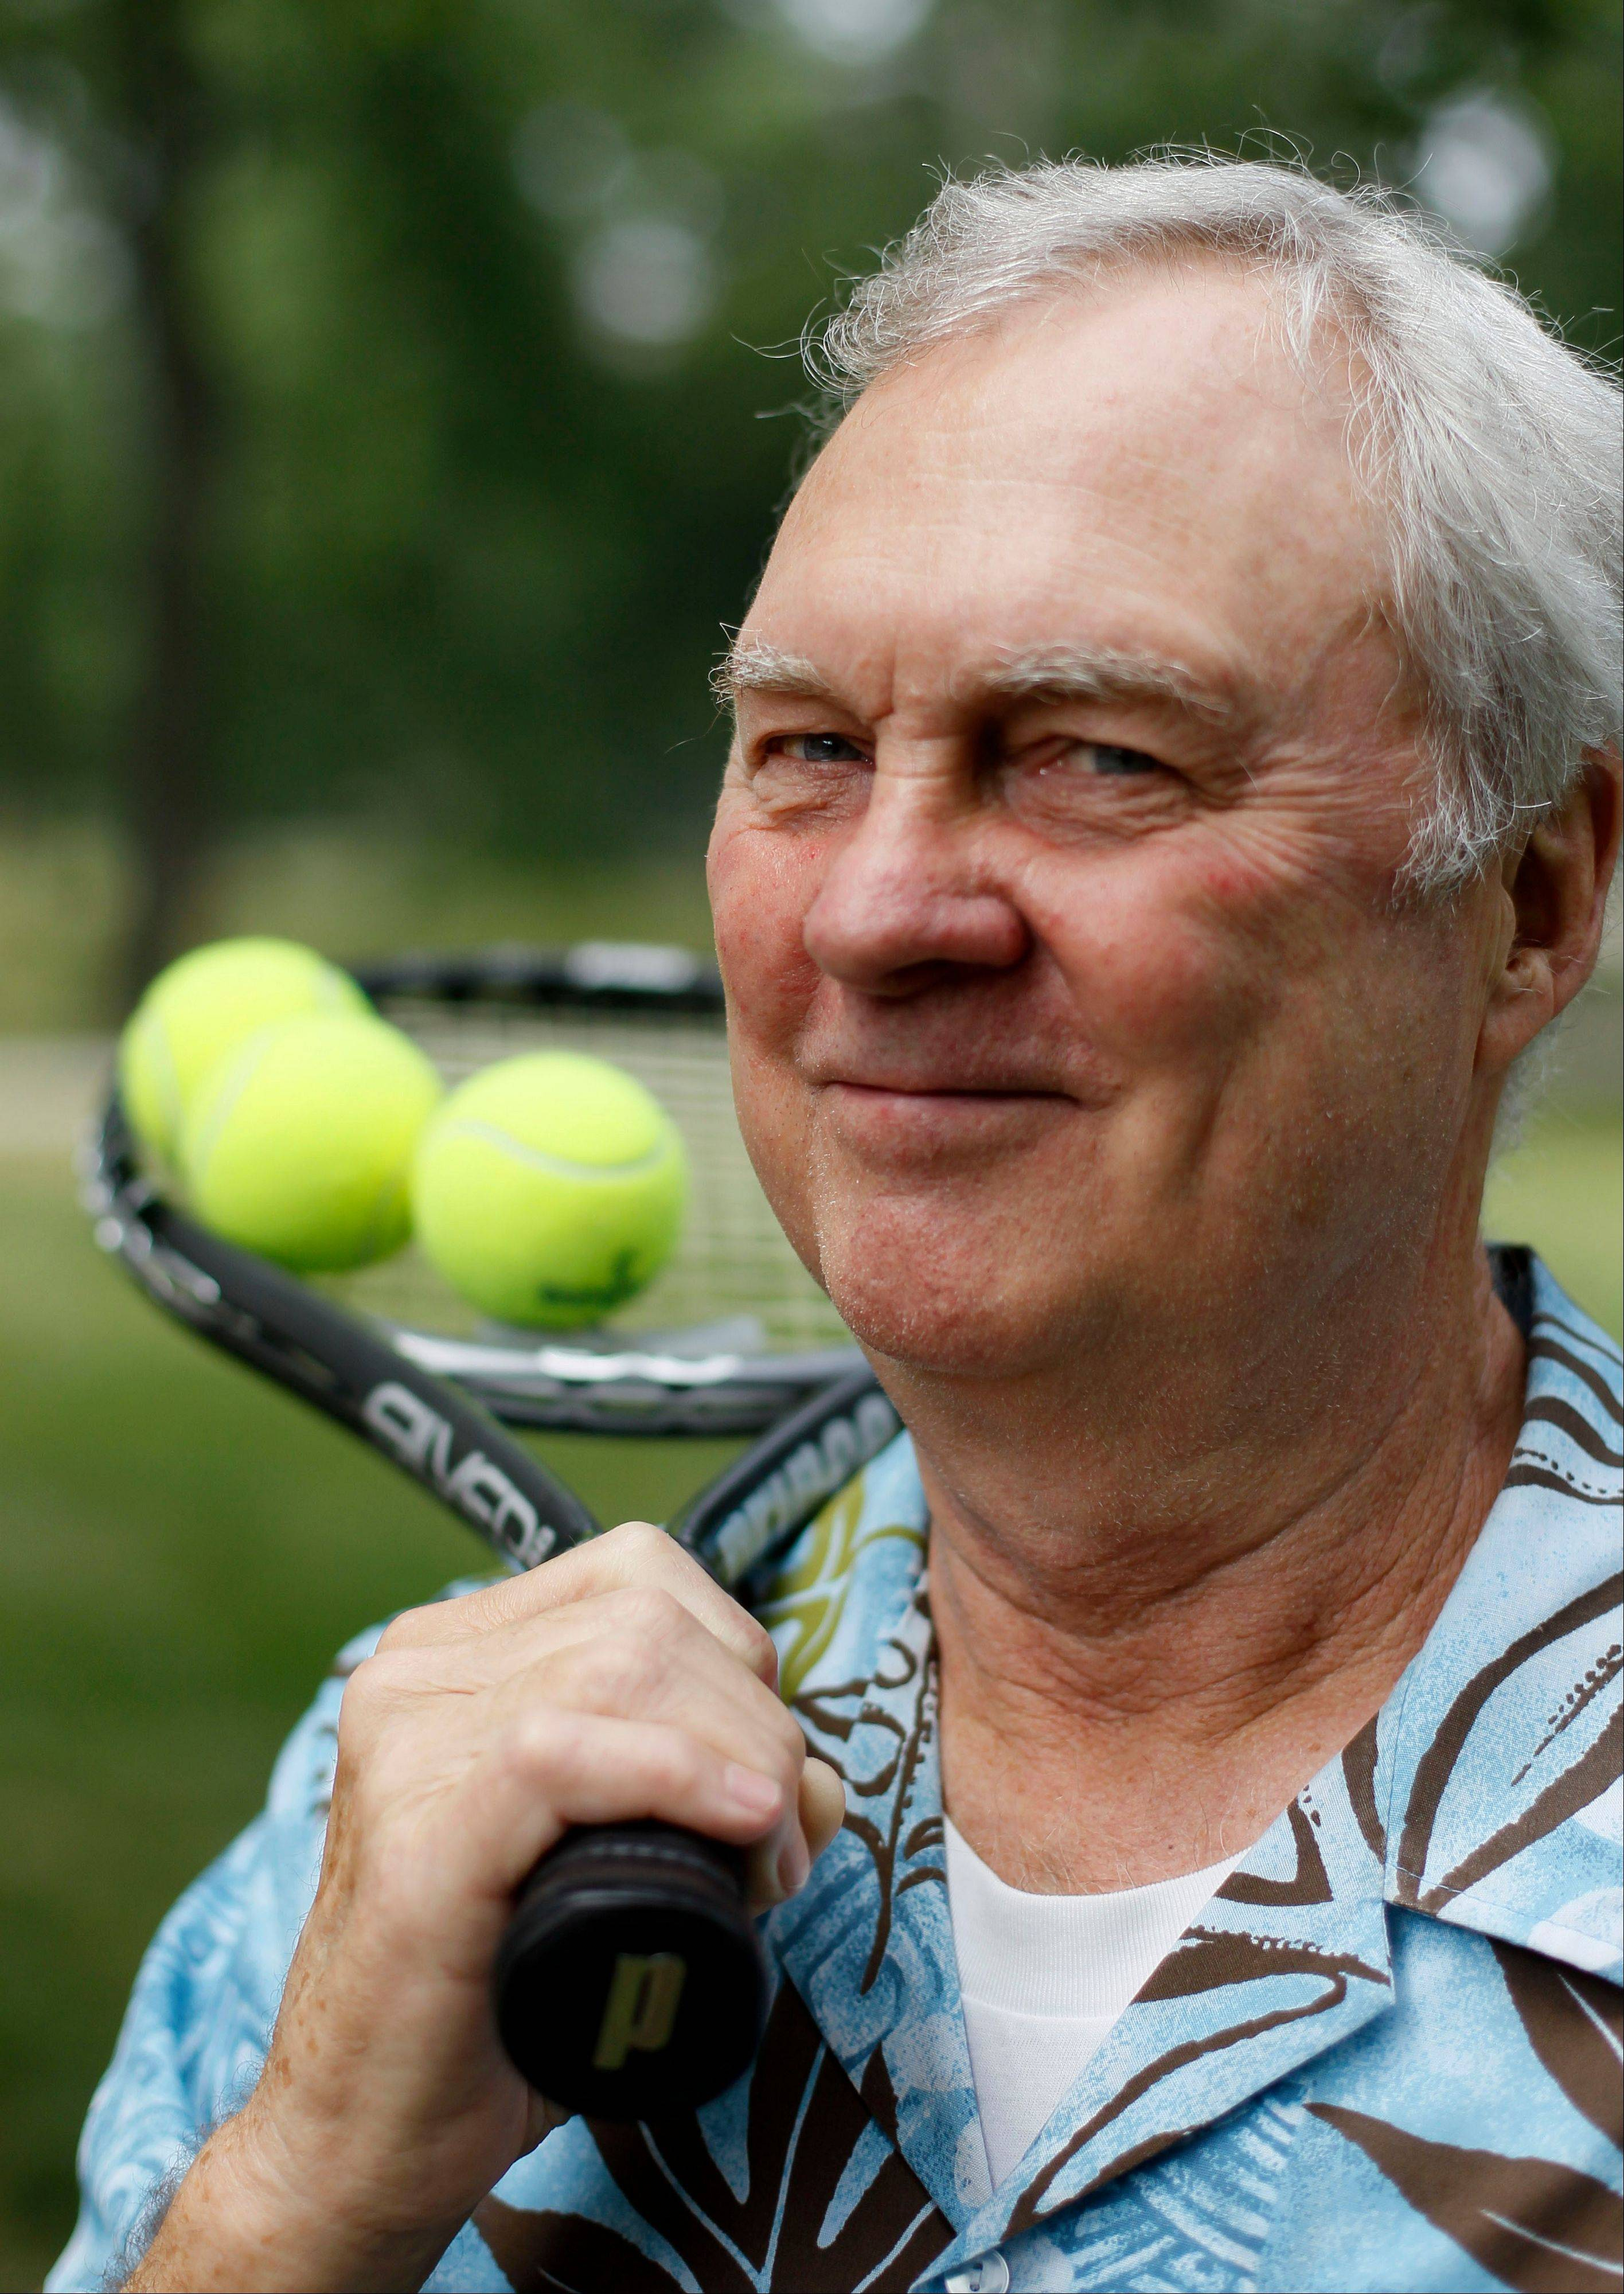 Don Worden, 79, poses with his tennis racket outside his home Tuesday in Chicago. Healthy, active seniors enduring this week's heat wave without any trouble are reminded that they need more water to keep the blood flowing and are far more at risk of dehydration and heat stroke.